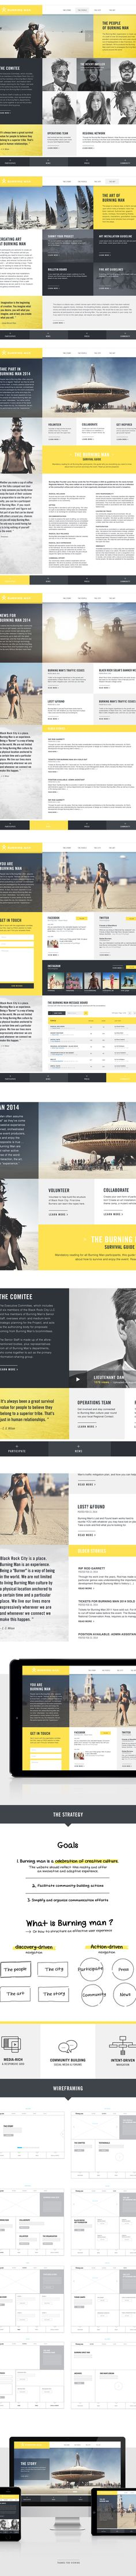 Burning Man - Redesign by Marc-Antoine Roy (The block layout, a hover and JQuery load system could be added easily to this.)